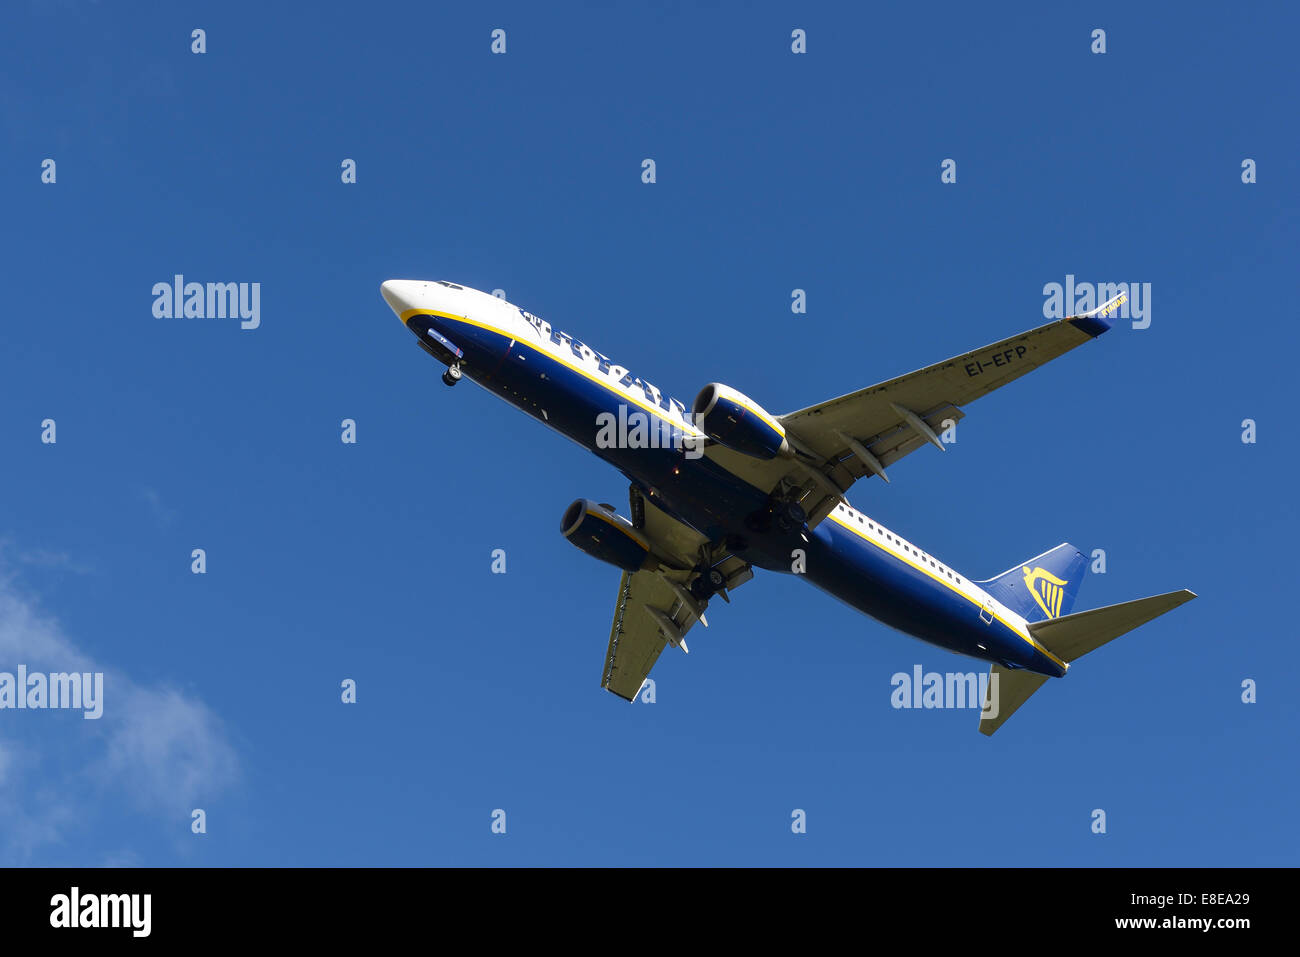 Ryanair Boeing 737 aircraft on the final approach to Manchester Airport UK - Stock Image